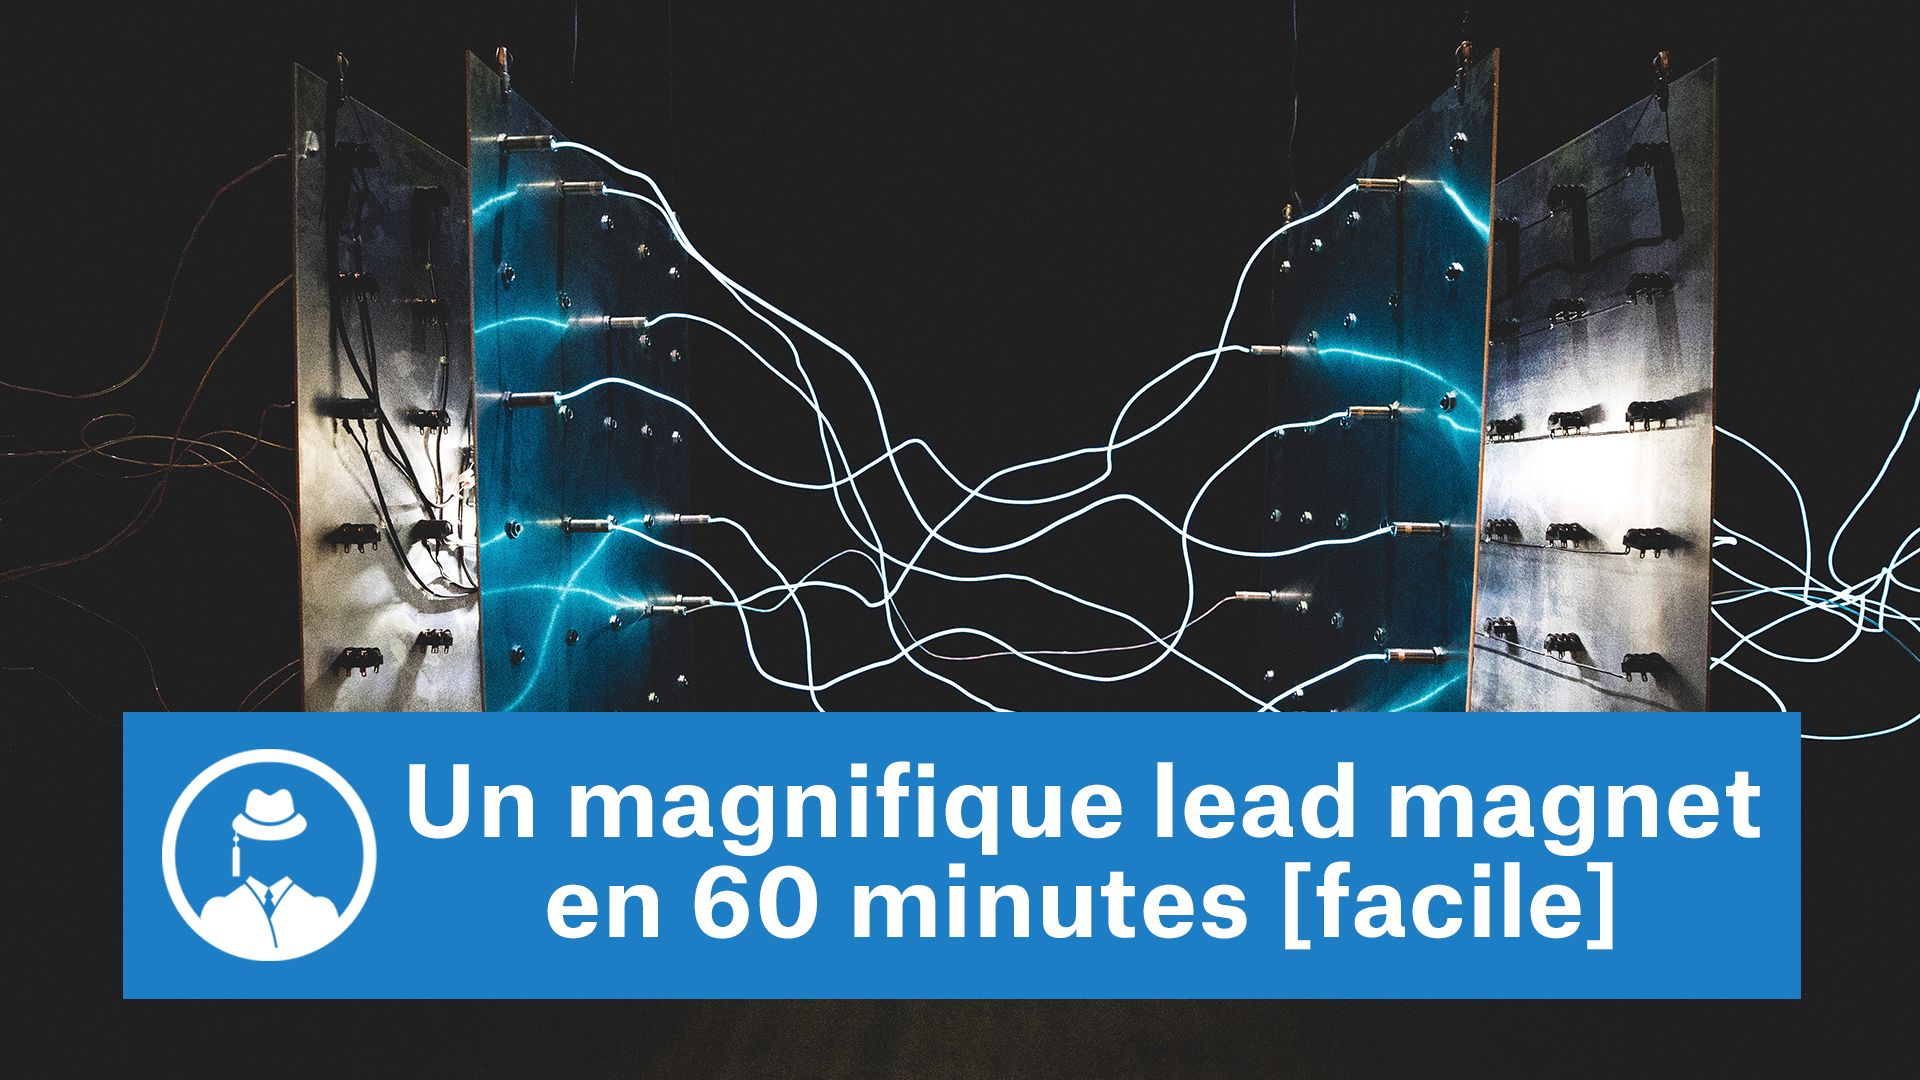 Un magnifique lead magnet en 60 minutes [facile] #GrowthHacking #WebMarketing #FormationGrowthHacking #CentreDeFormationFrance #TunnelAARRR #AARRR #SocialMedia #CommunityManagement #SEO #MarketingDigital #SiteWeb #LeadMagnet